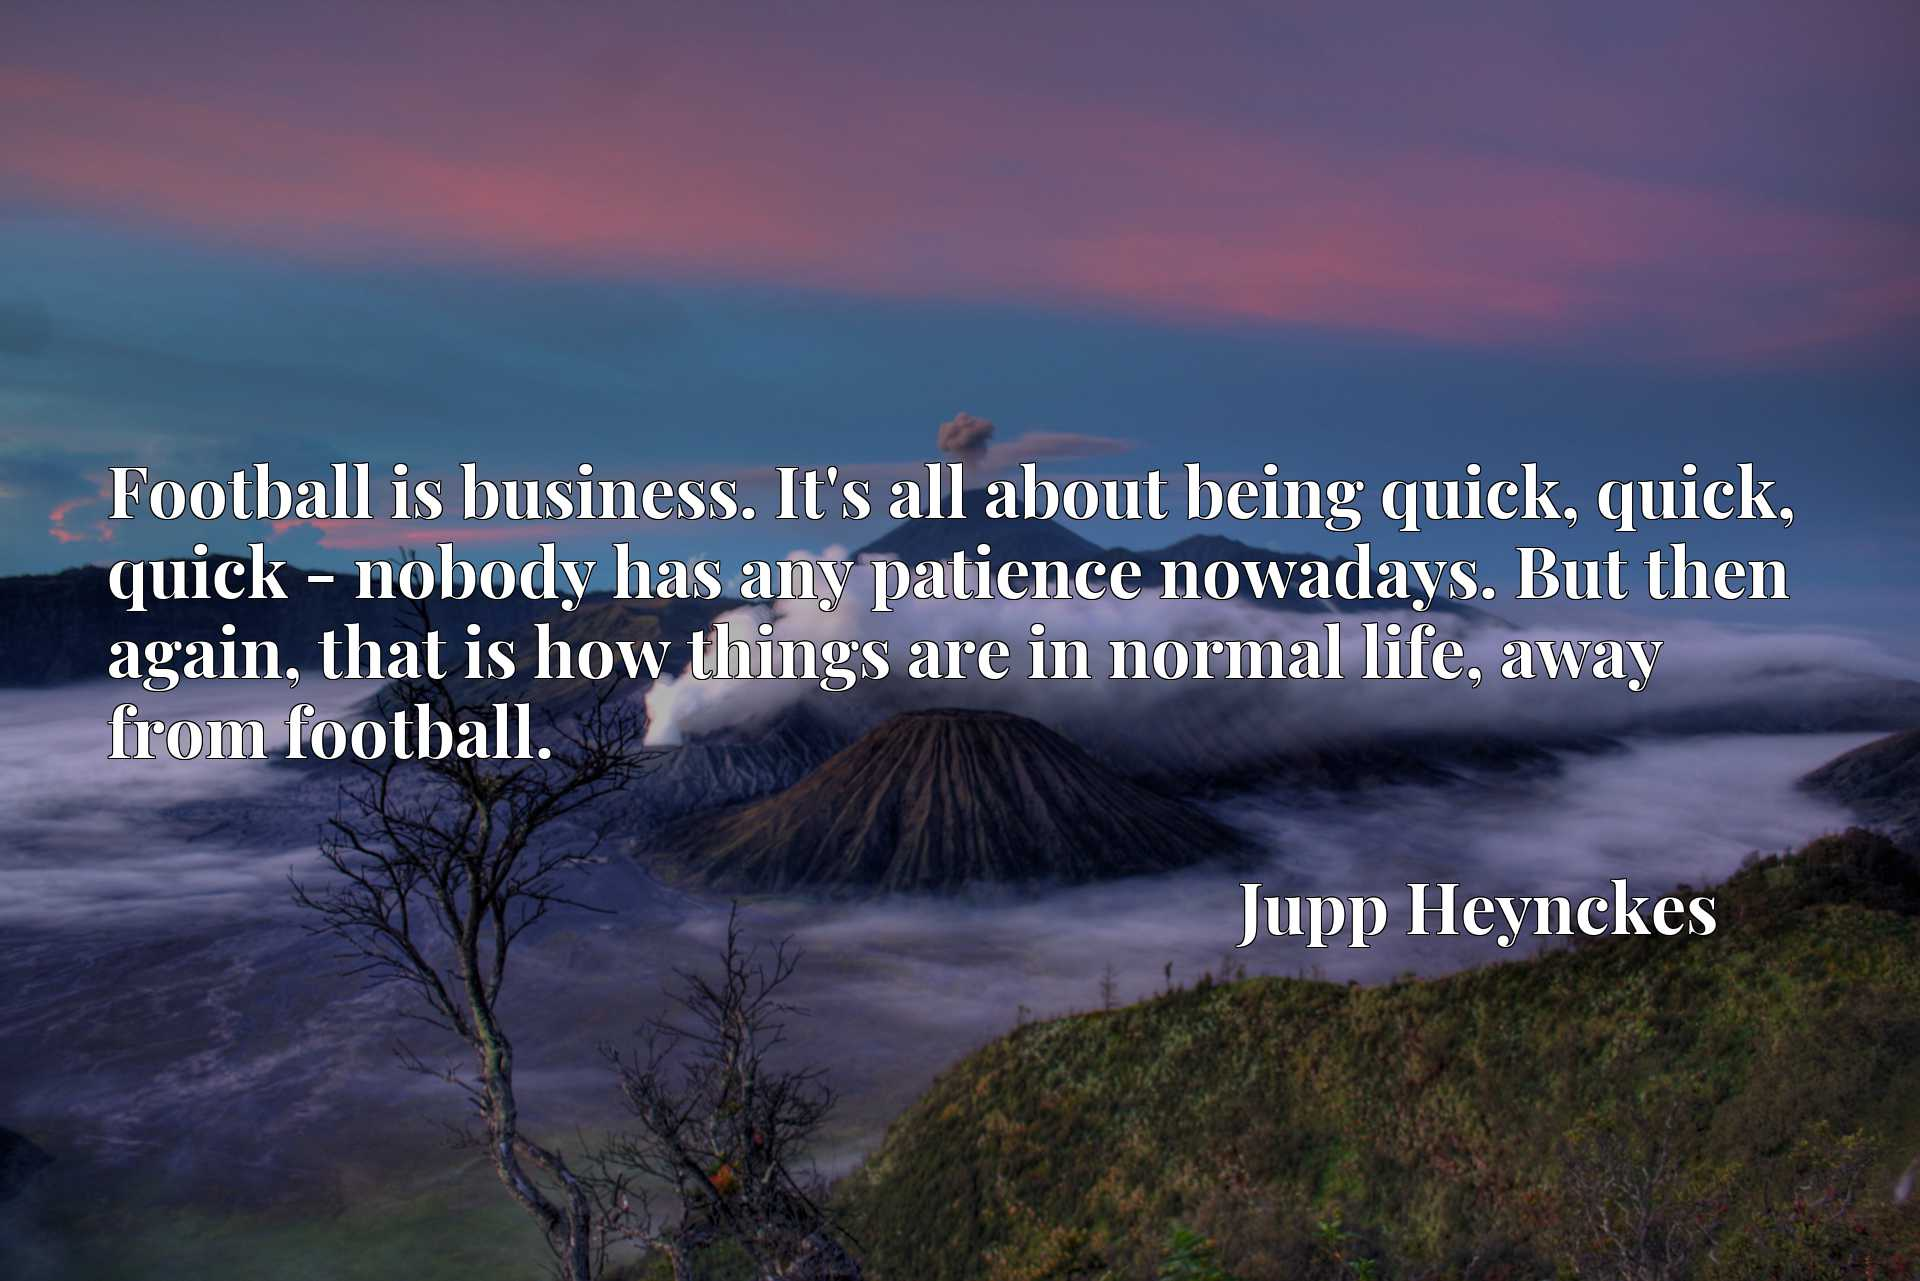 Football is business. It's all about being quick, quick, quick - nobody has any patience nowadays. But then again, that is how things are in normal life, away from football.